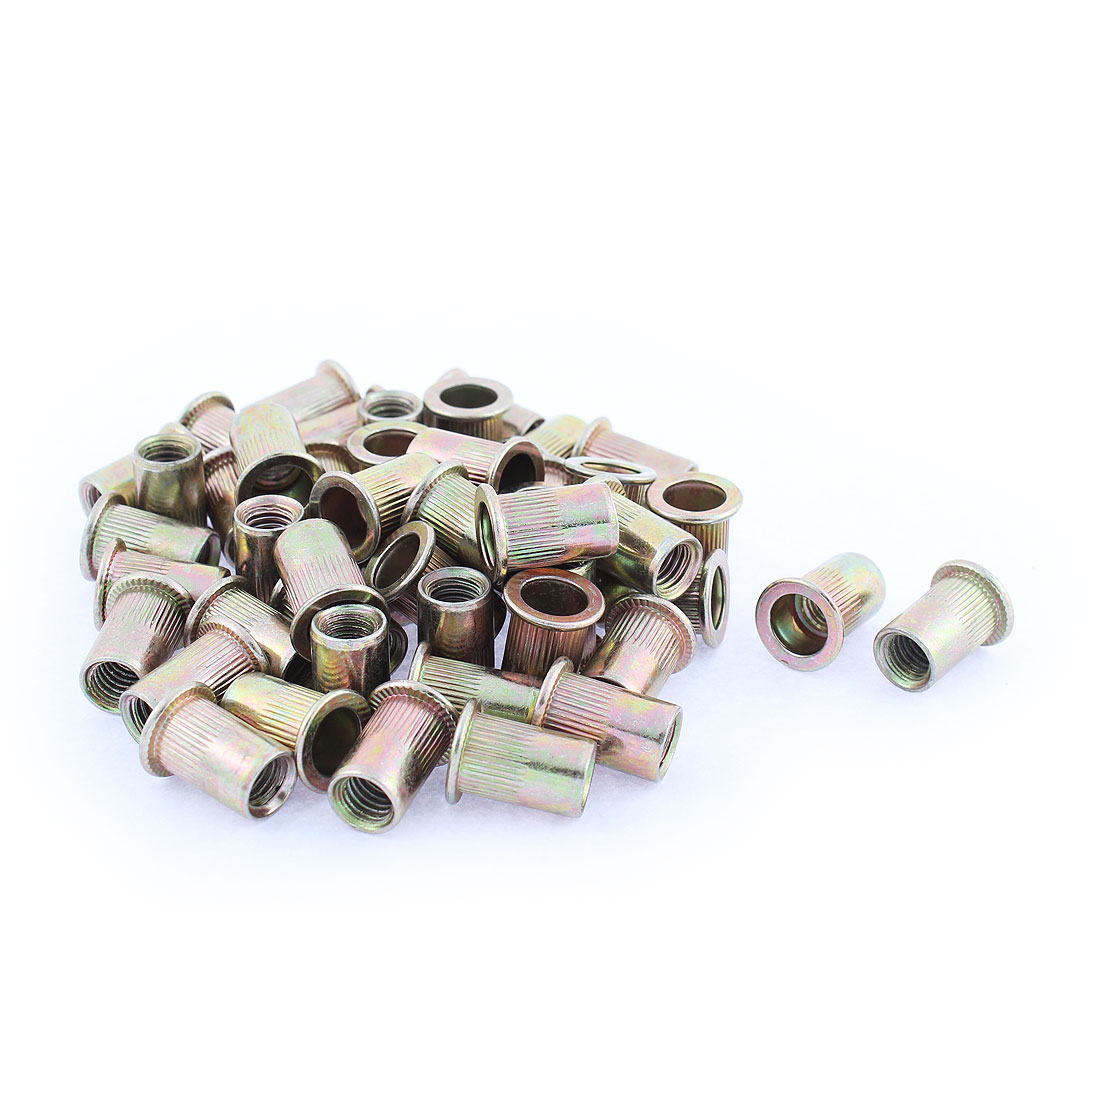 M8 Thread Dia Flat Head Zinc Plated Rivet Blind Nut Nutsert Brass Tone 50pcs